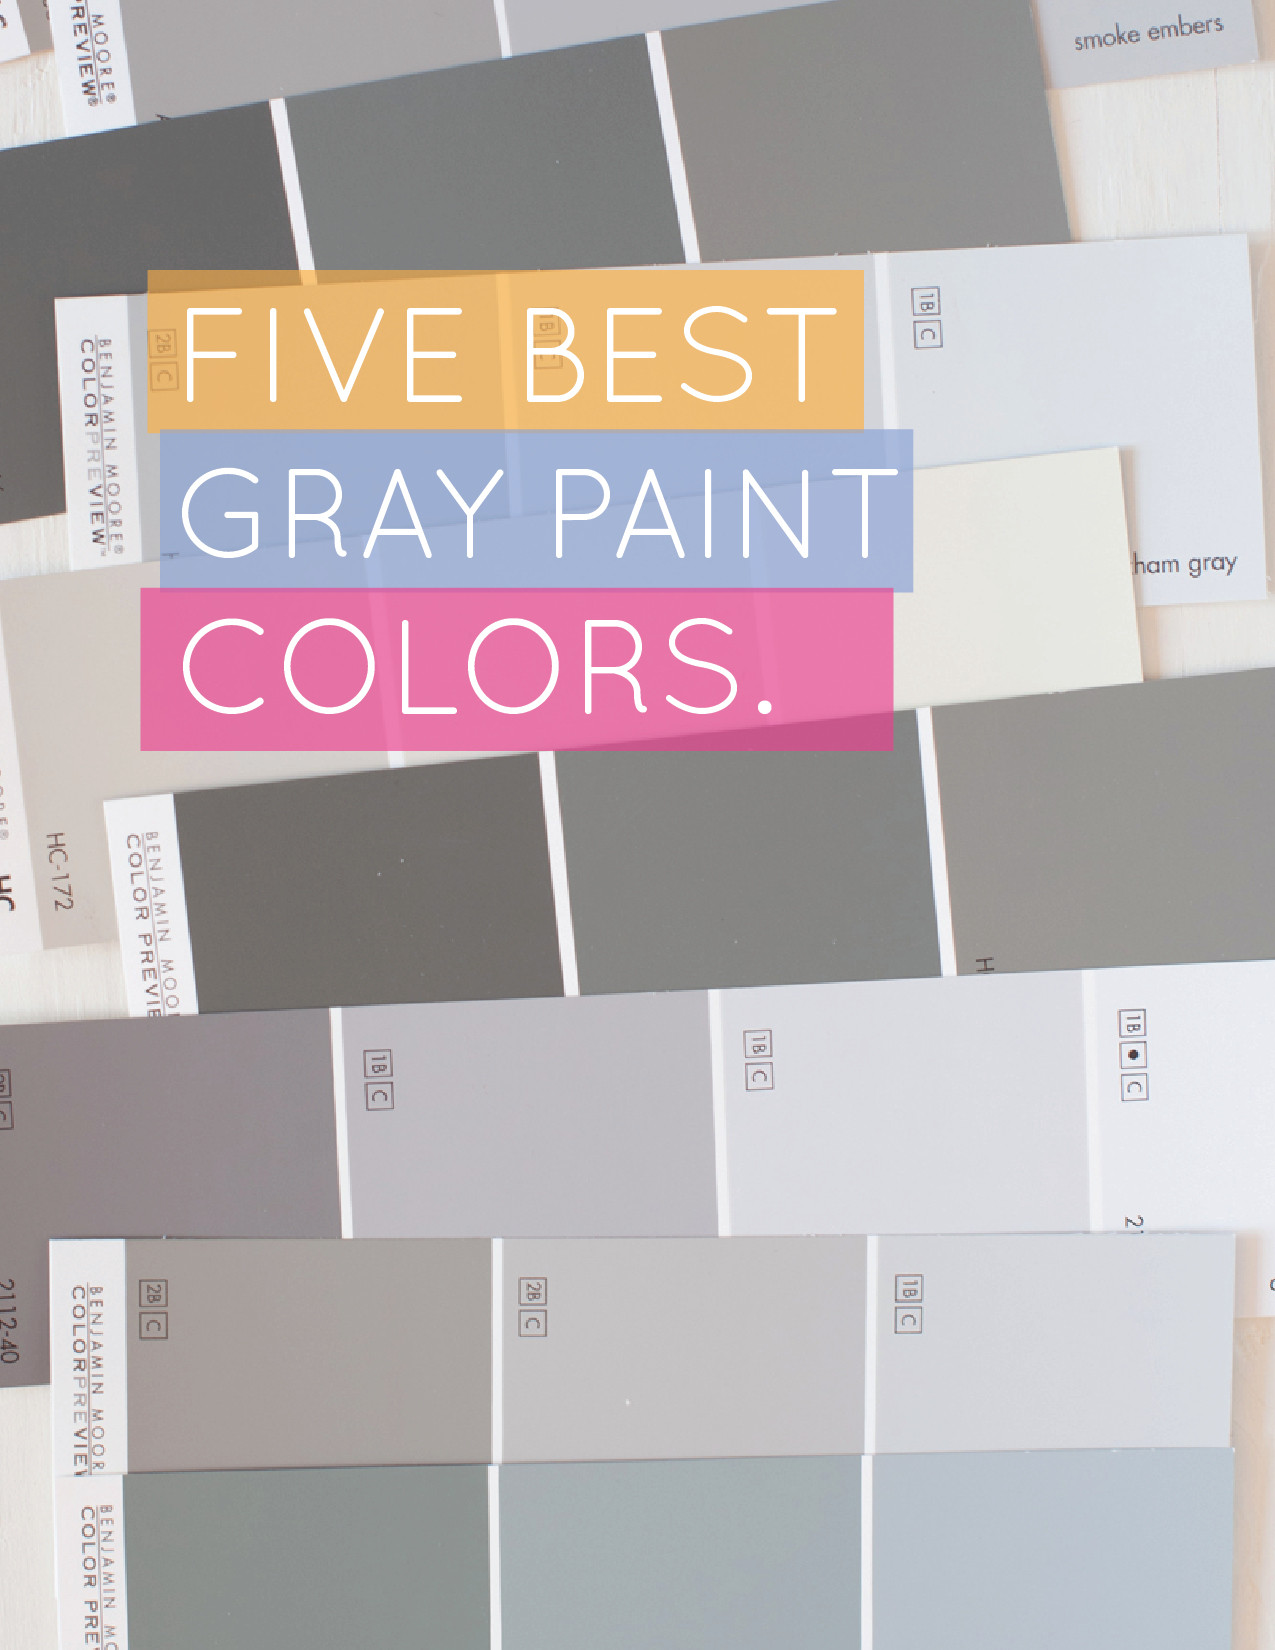 Best ideas about Best Grey Paint Colors . Save or Pin Alice and Lois5 best gray paint colors Now.